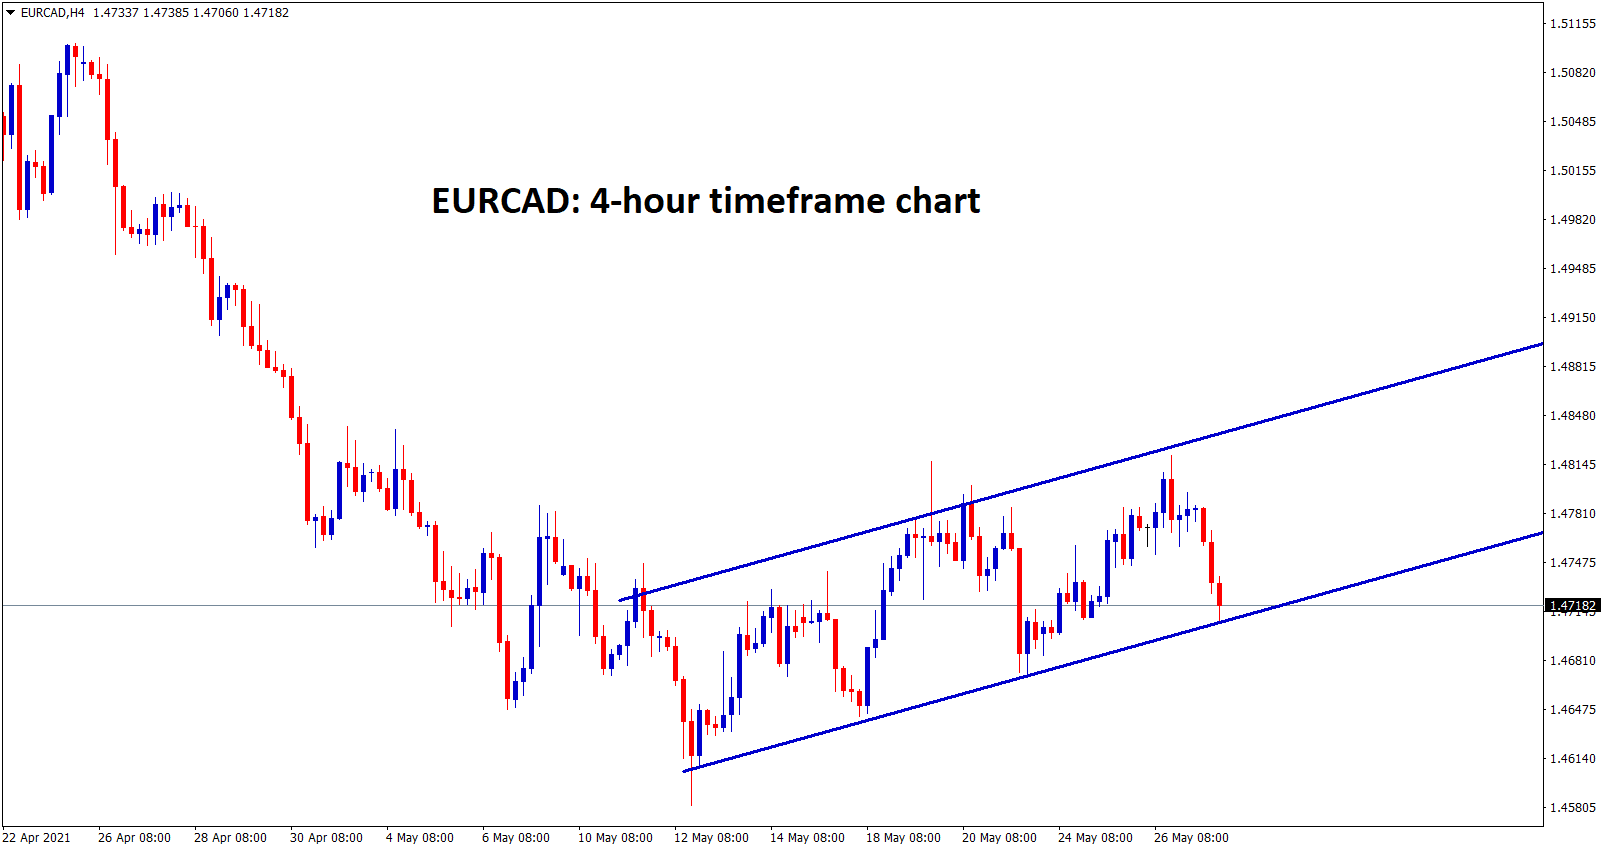 EURCAD is moving in an uptrend range